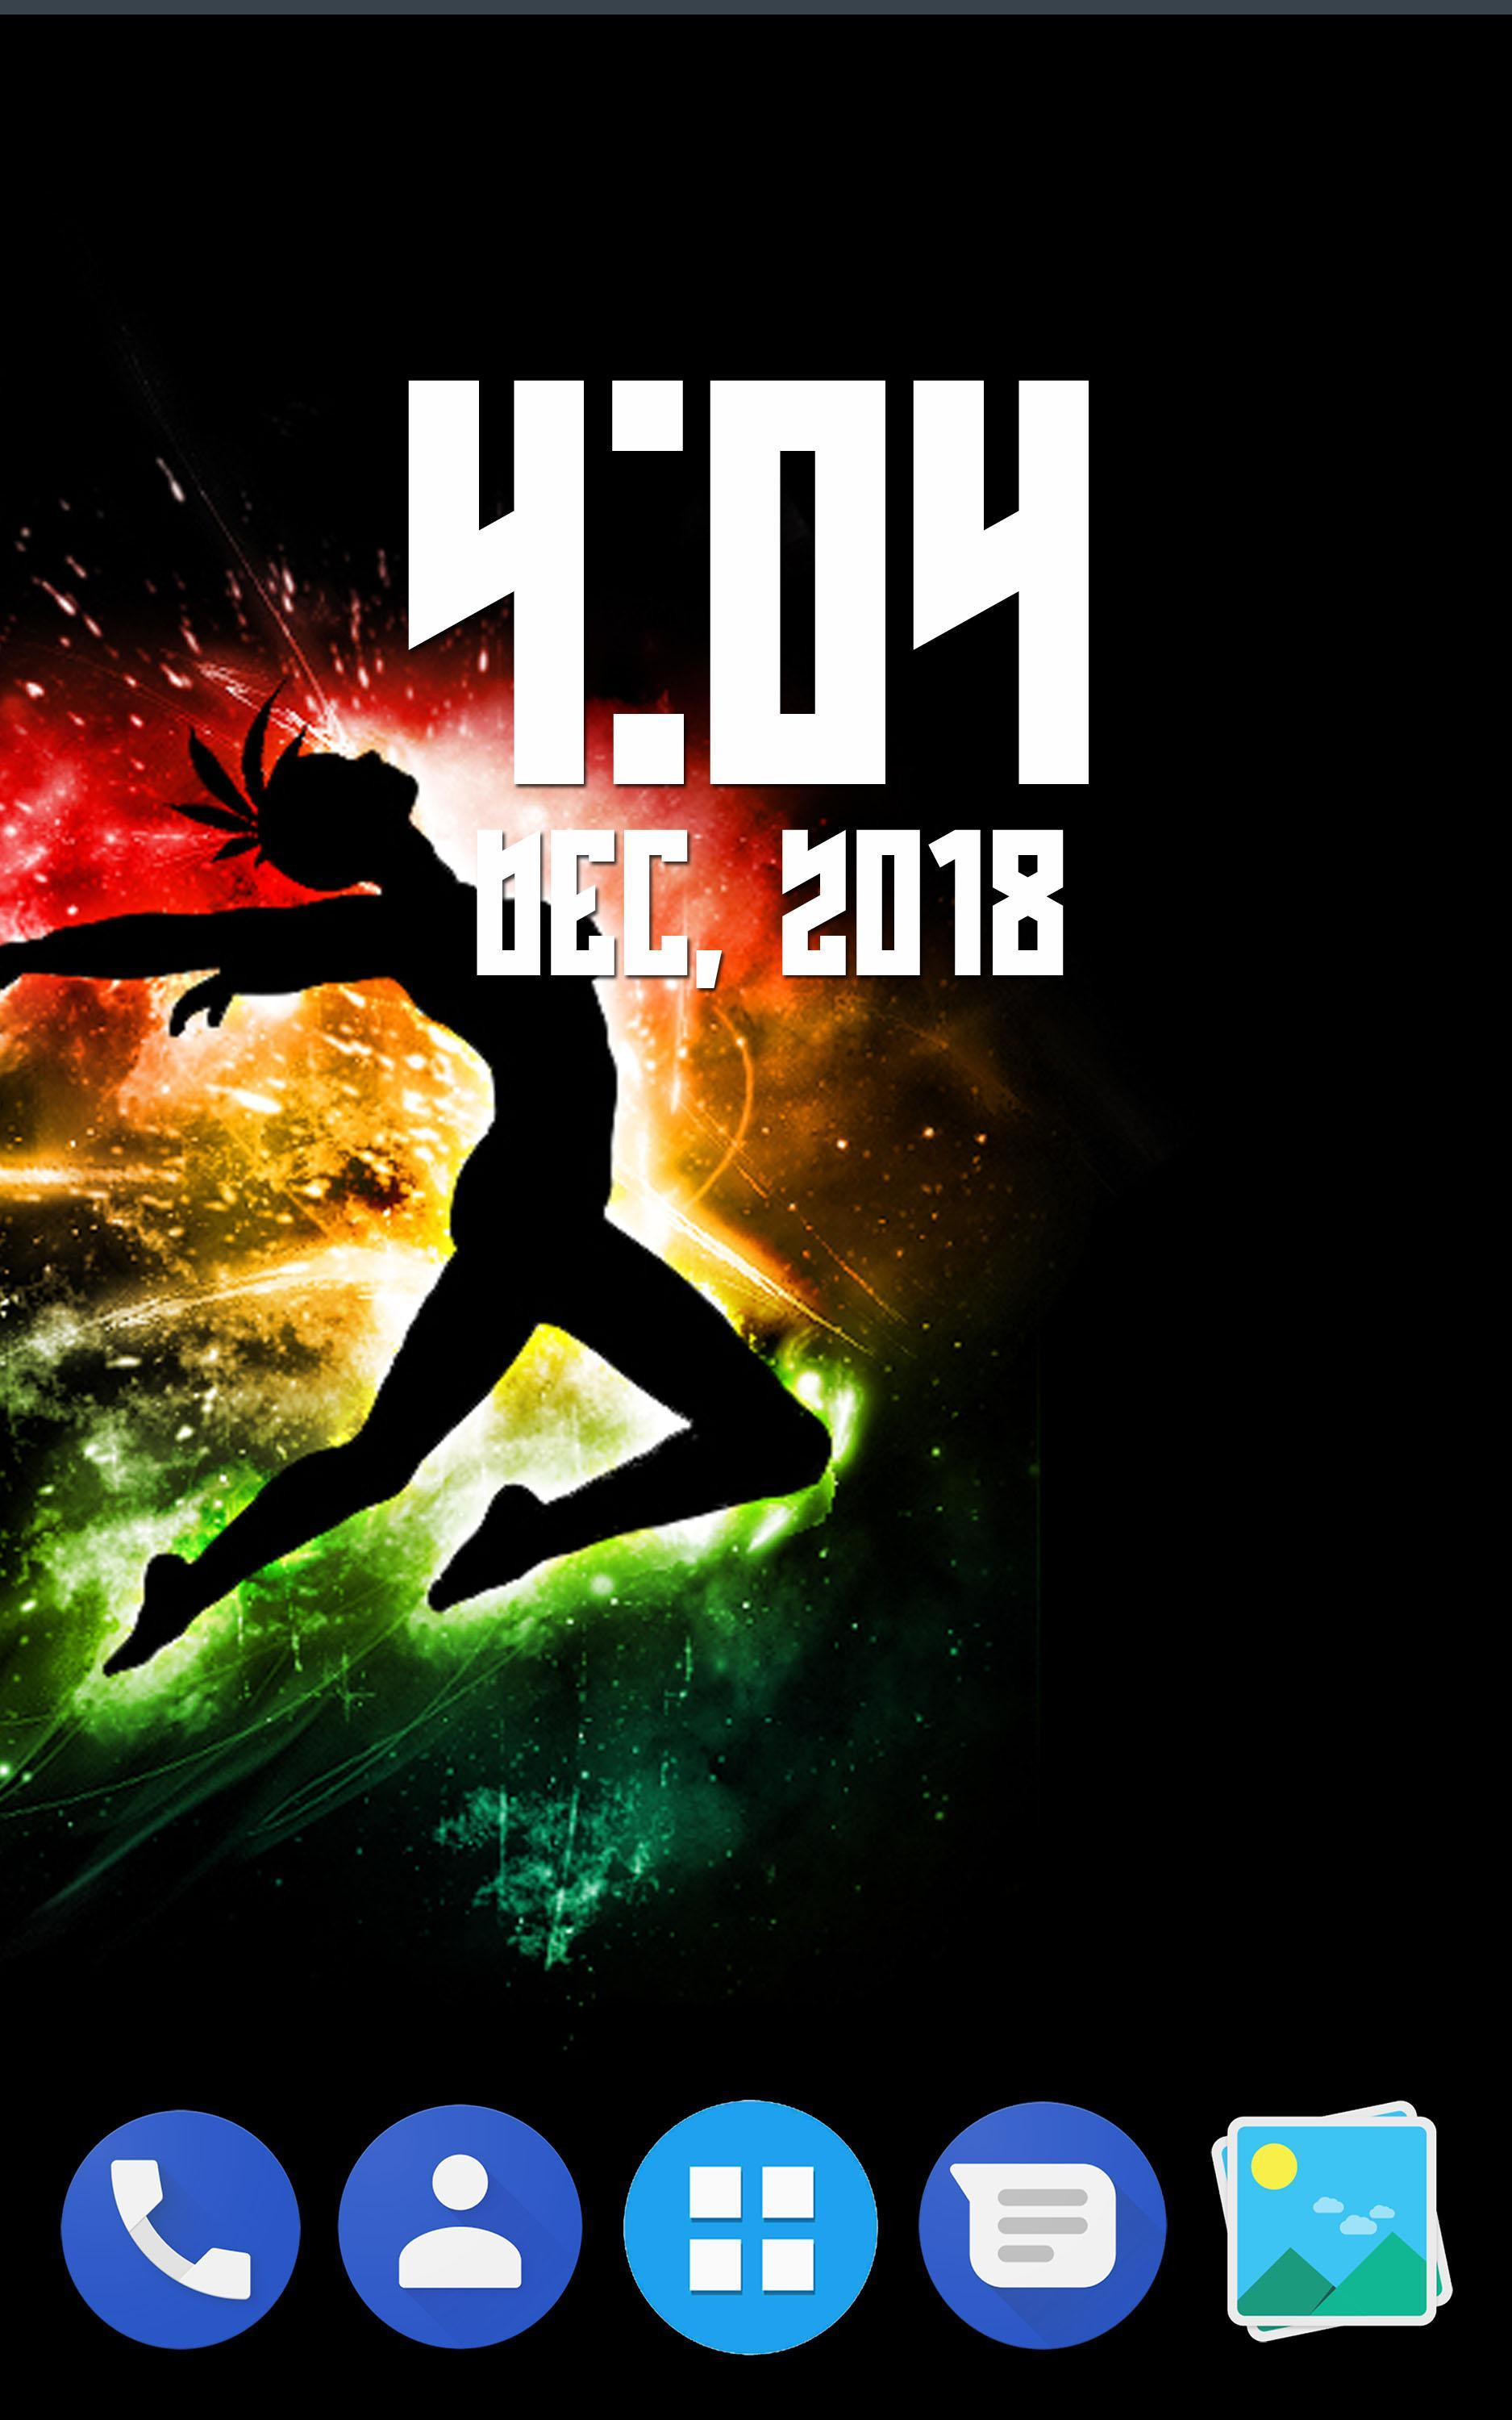 Rasta Wallpaper Hd For Android Apk Download